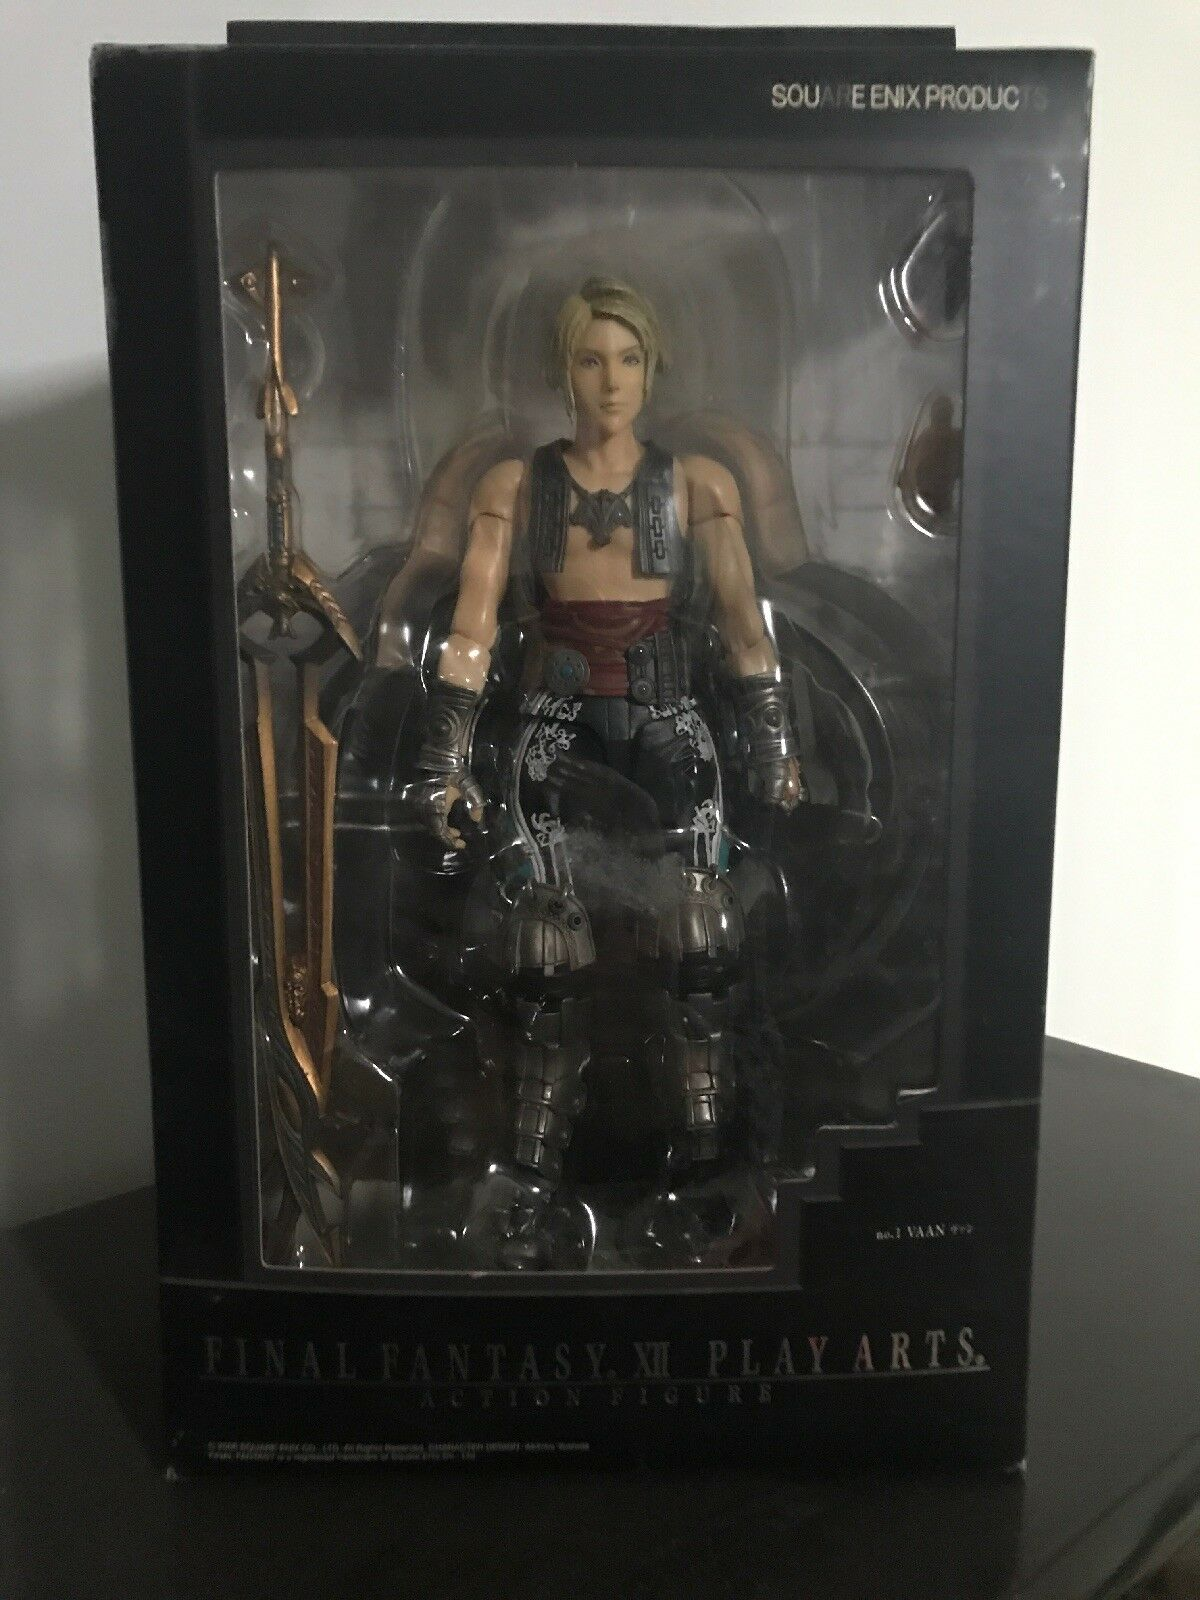 FINAL FANTASY XII 12 - Vaan PLAY ARTS ACTION FIGURE SQUARE ENIX